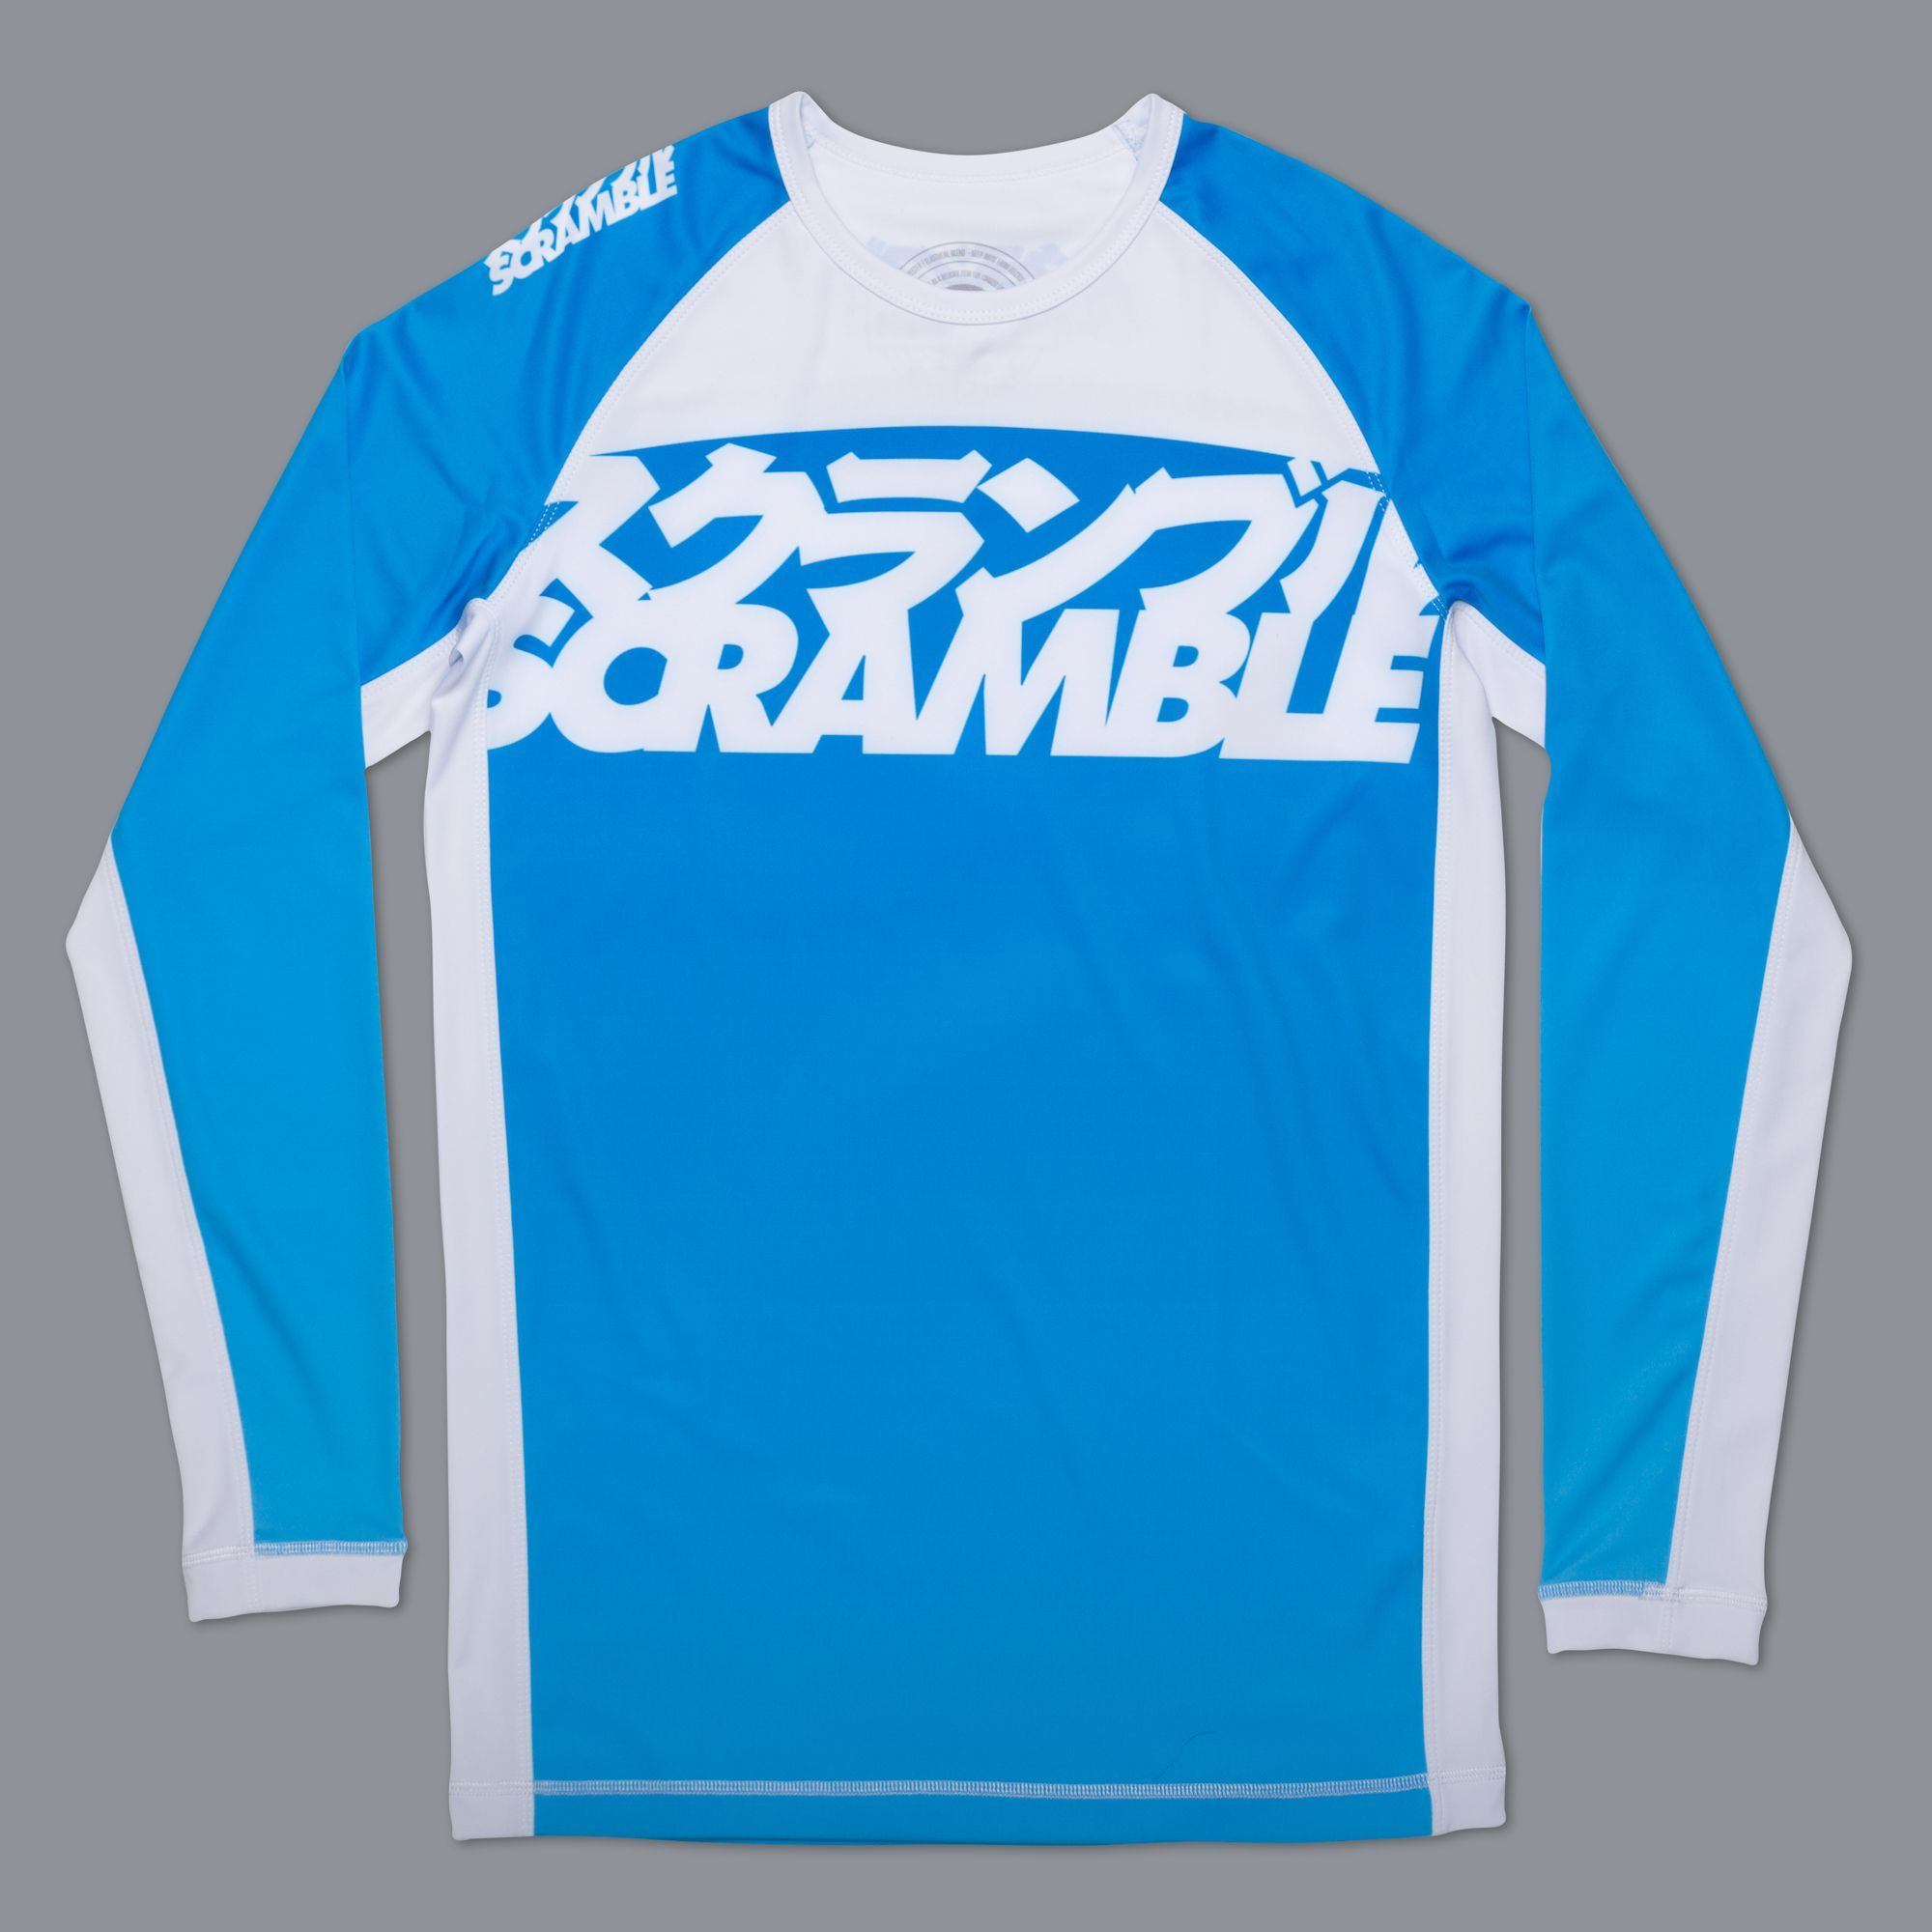 SCRAMBLE RANKED RASHGUARD V3 –ライトブルー